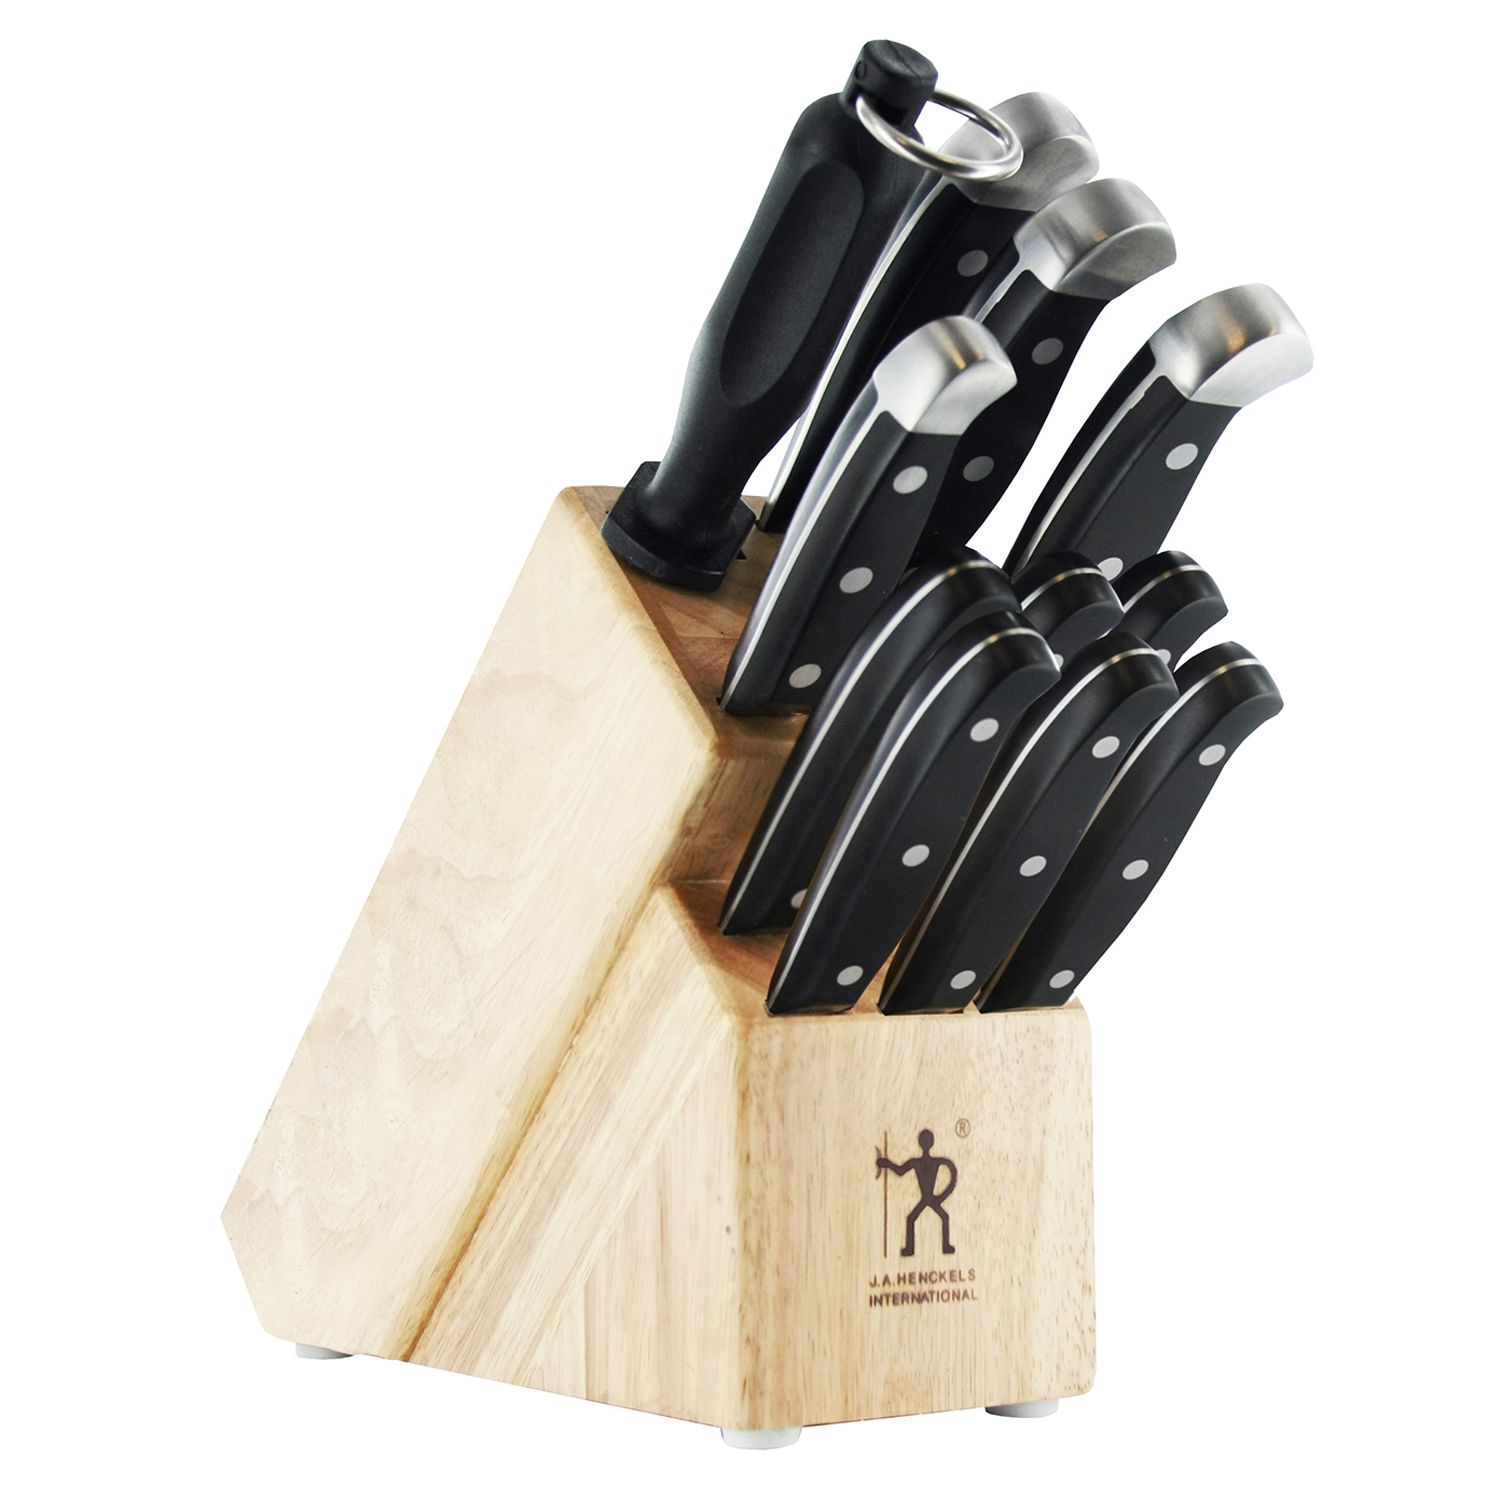 ja henckels statement 12pc cutlery set - Henckels Knife Set